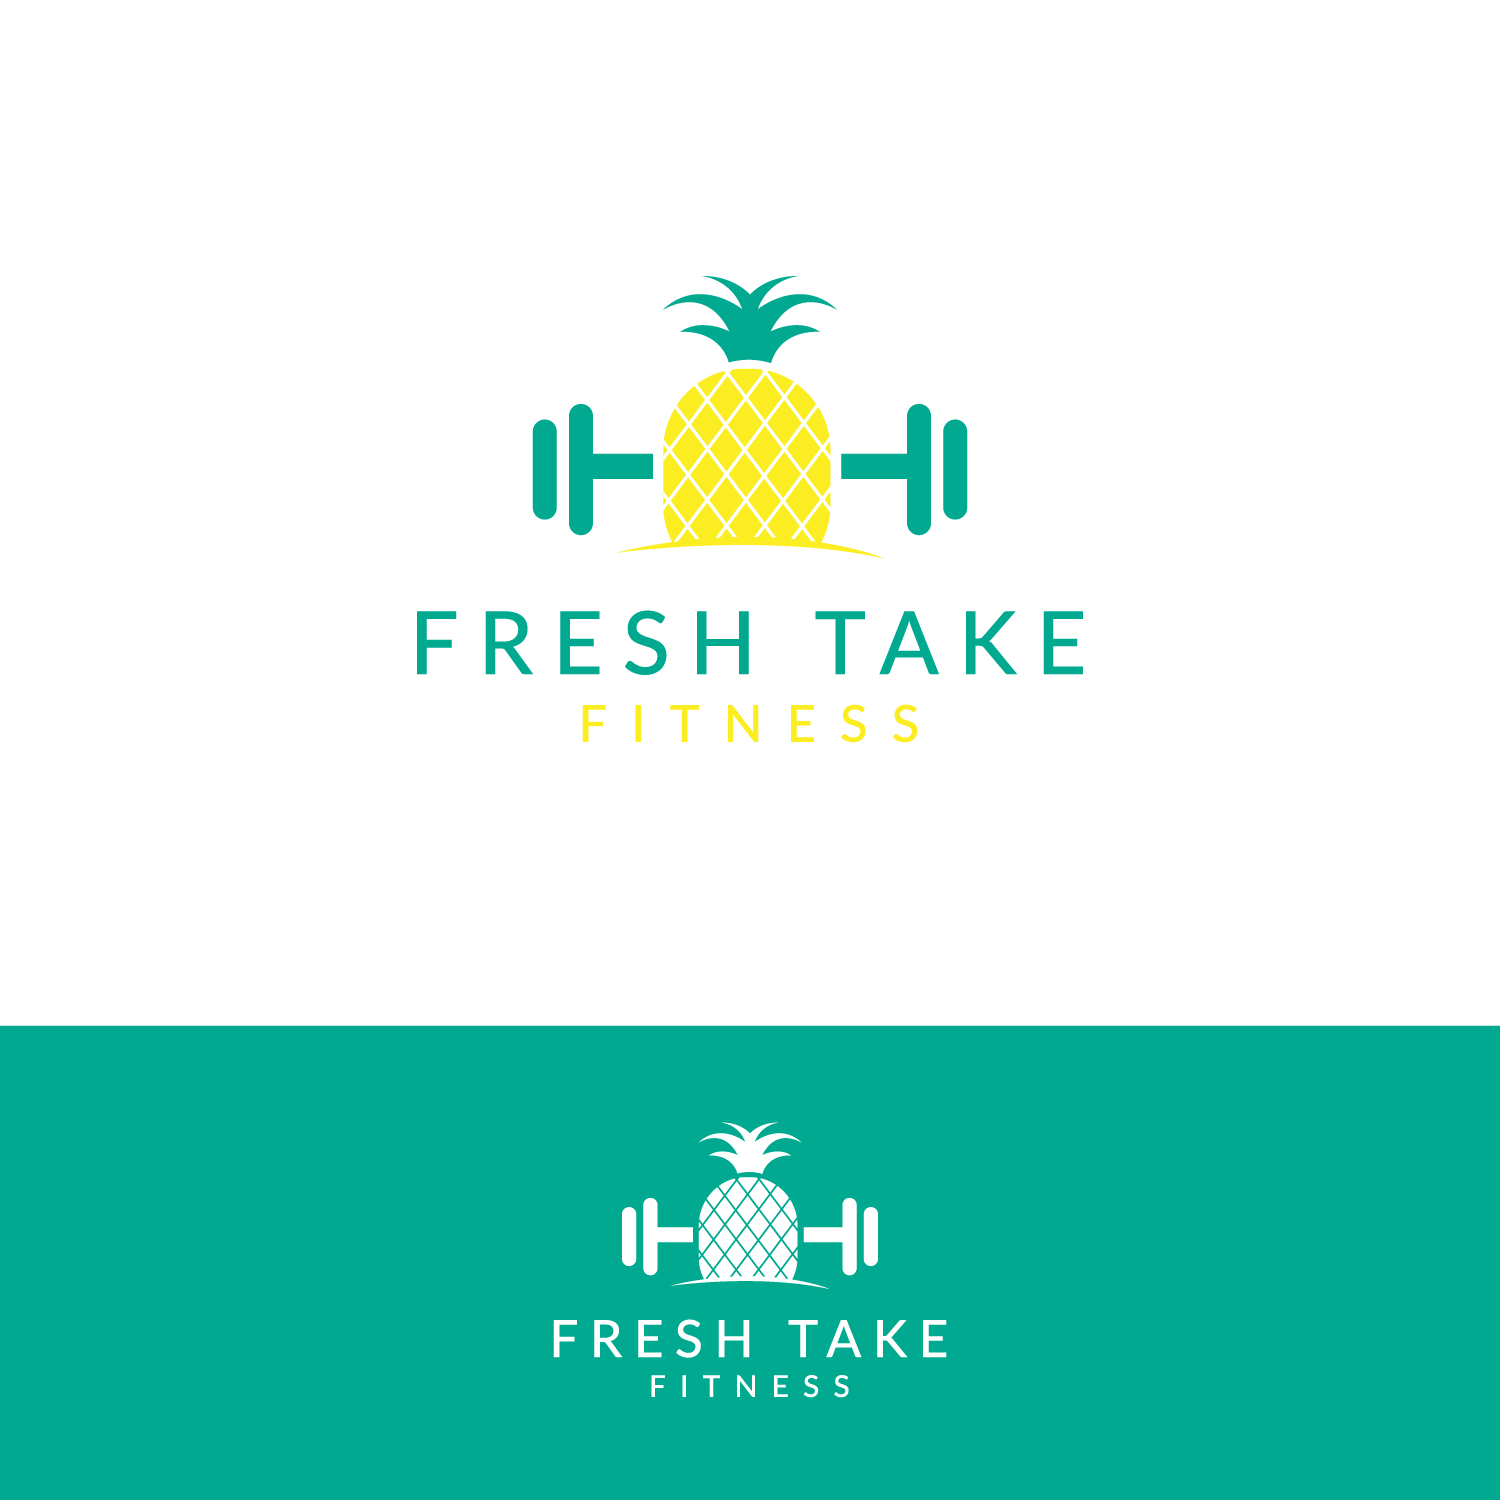 70 Fitness Logos For Personal Trainers, Gyms & Yoga Studios